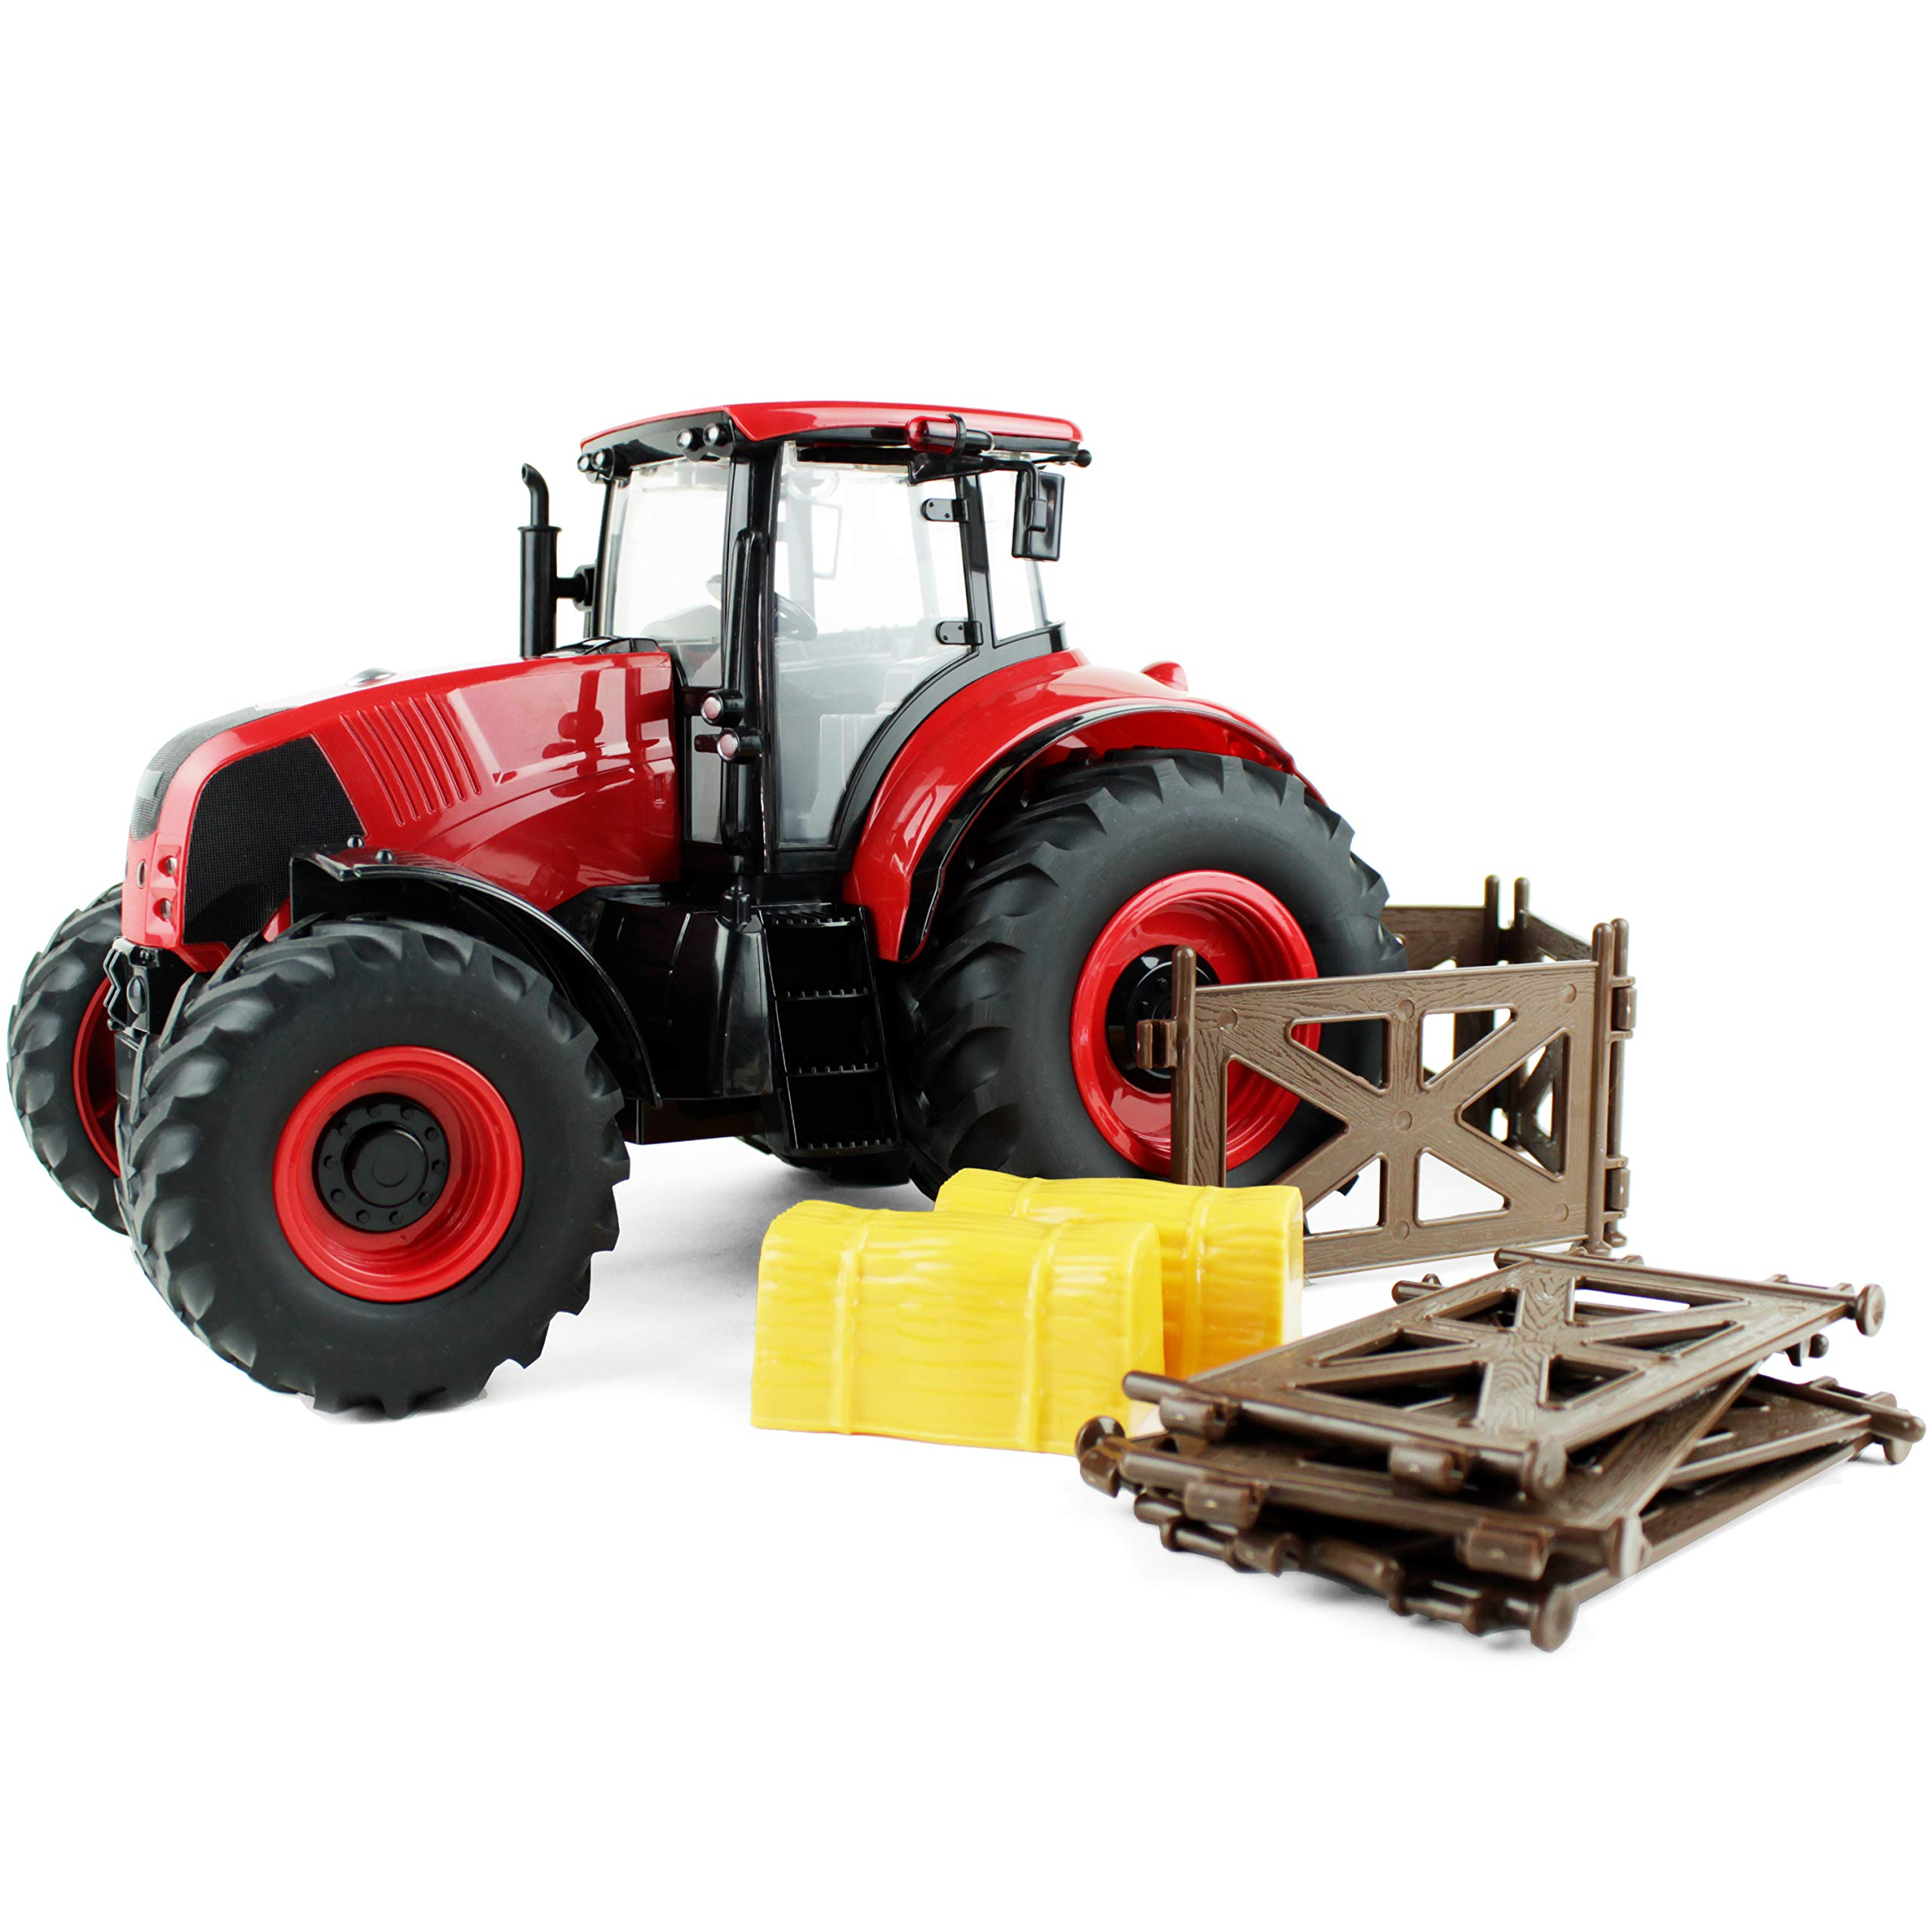 Boley Red Farm Tractor Toy - Farm Tractor Car with Hay Bales and Barn Gates - Lights Up and Makes Sounds by Boley